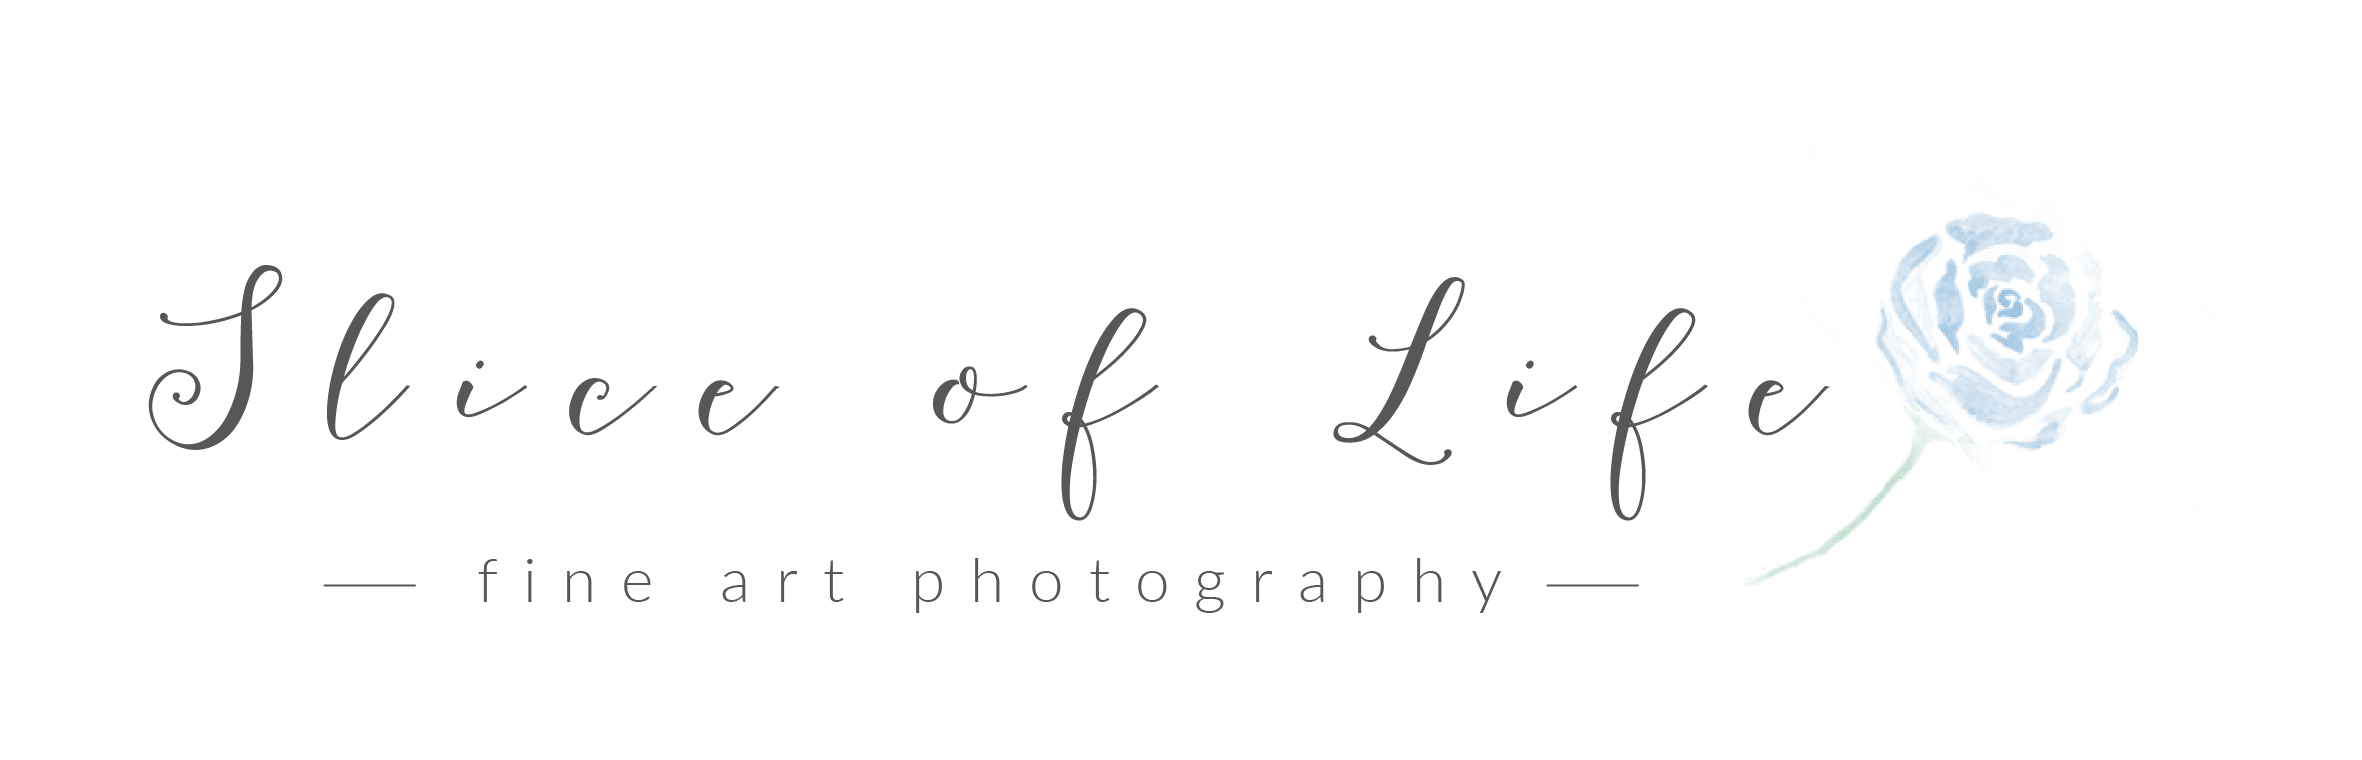 Slice of Life Photography - Fine Art Photographer